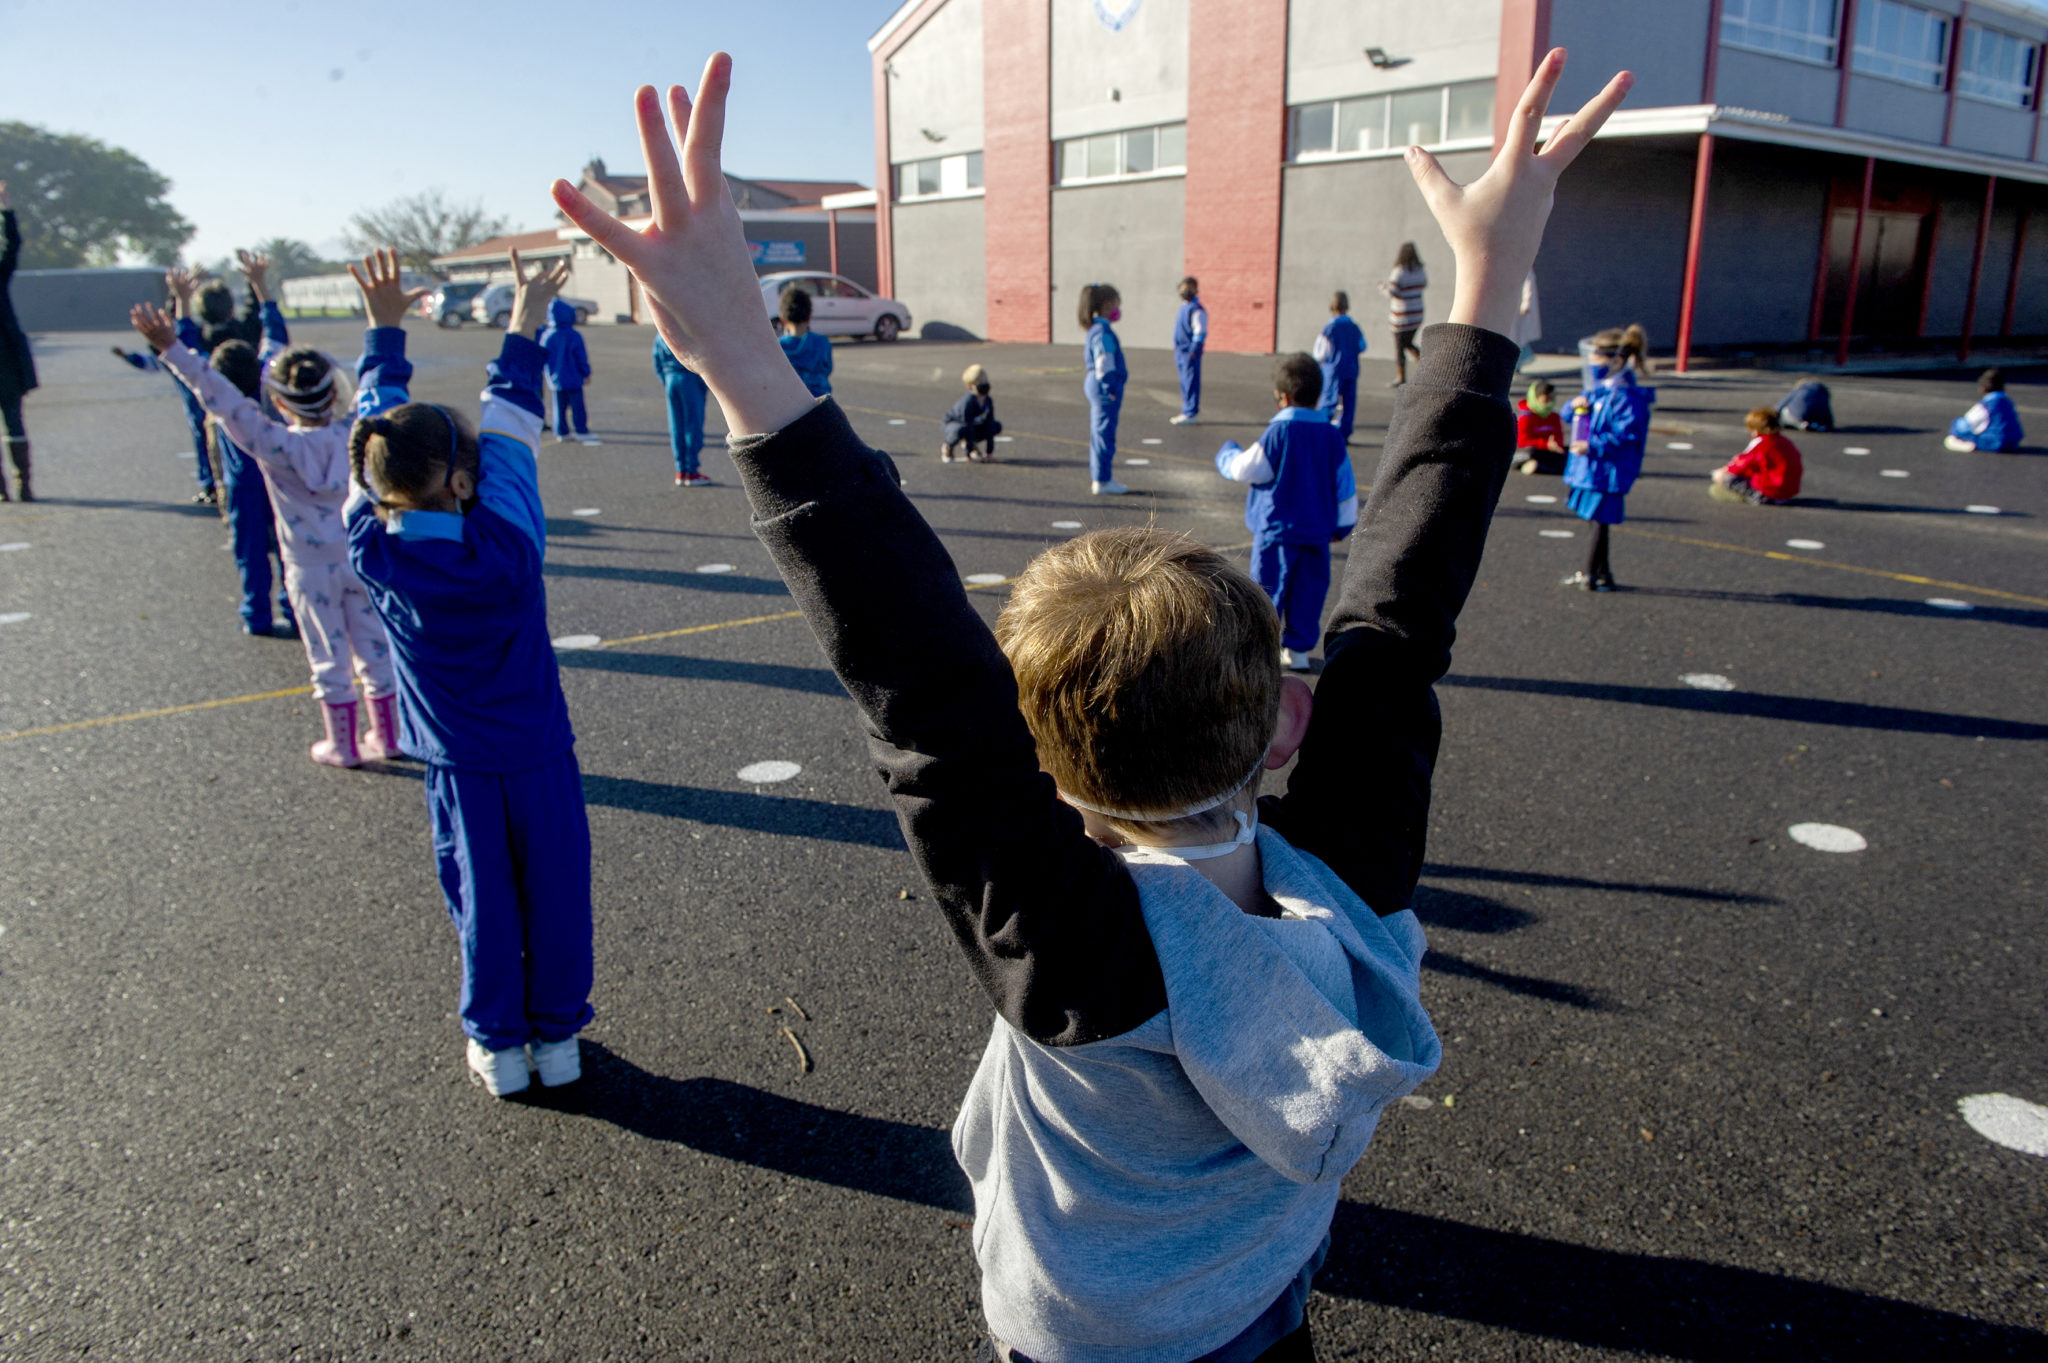 Children stretch during breaktime at a school in Cape Town South Africa